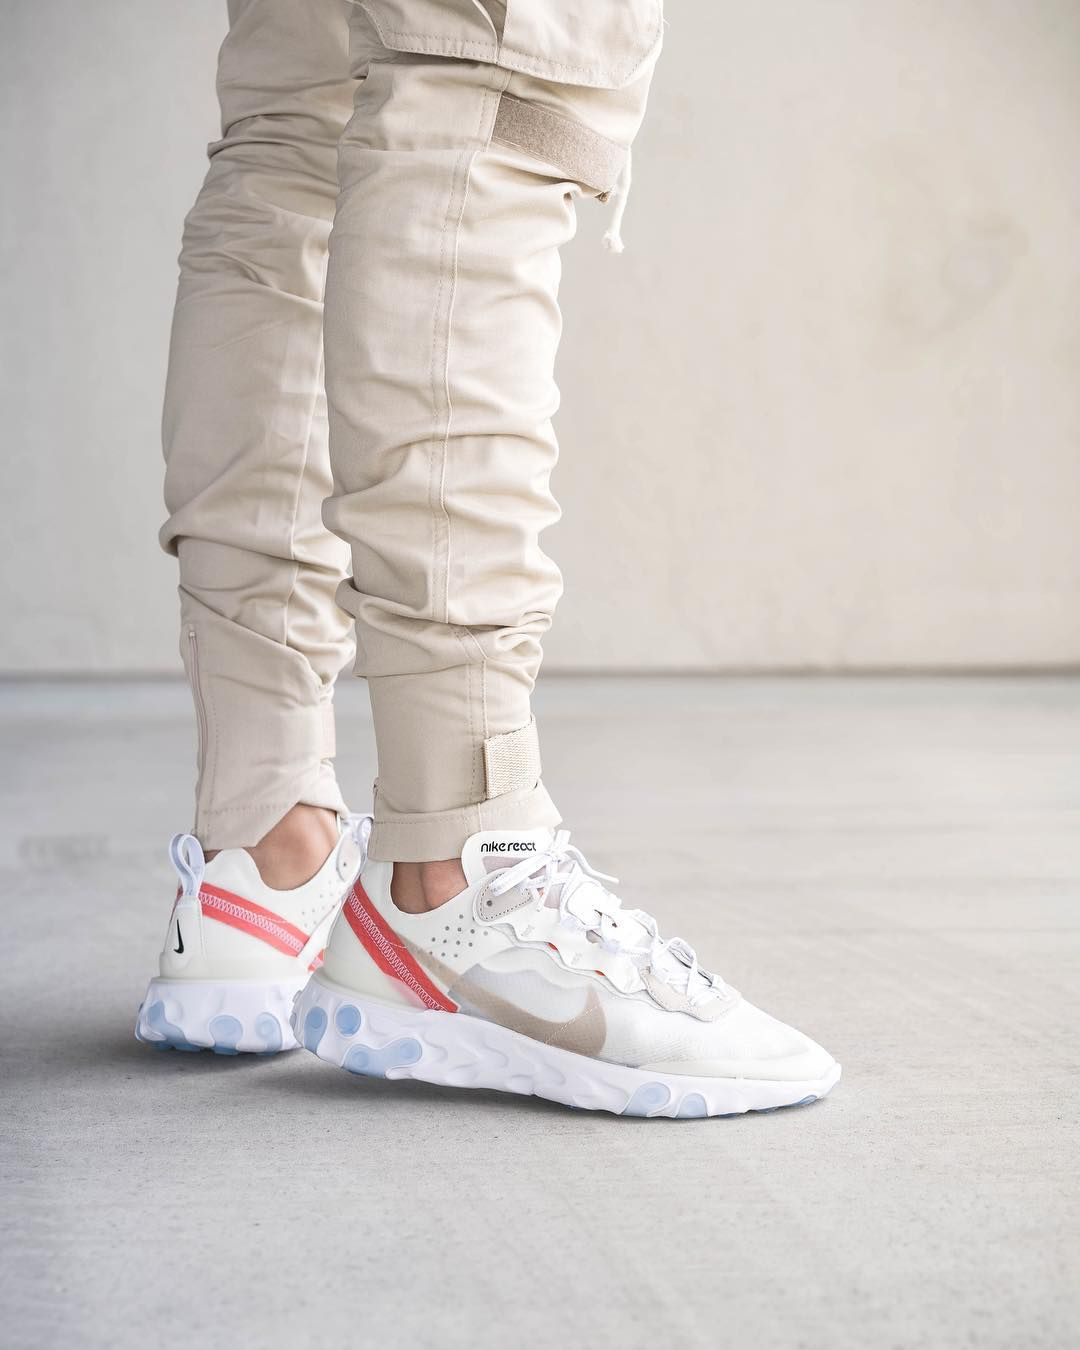 """Lutz on Instagram: """"Nike React Element 87 </p>                     </div> </div>          <!-- tab-area-end --> </div> <!--bof also purchased products module-->  <!--eof also purchased products module--> <!--bof also related products module--> <!--eof also related products module--> <!--bof Prev/Next bottom position -->         <!--eof Prev/Next bottom position --> <!--bof Form close--> </form> <!--bof Form close--> </div> <div style="""